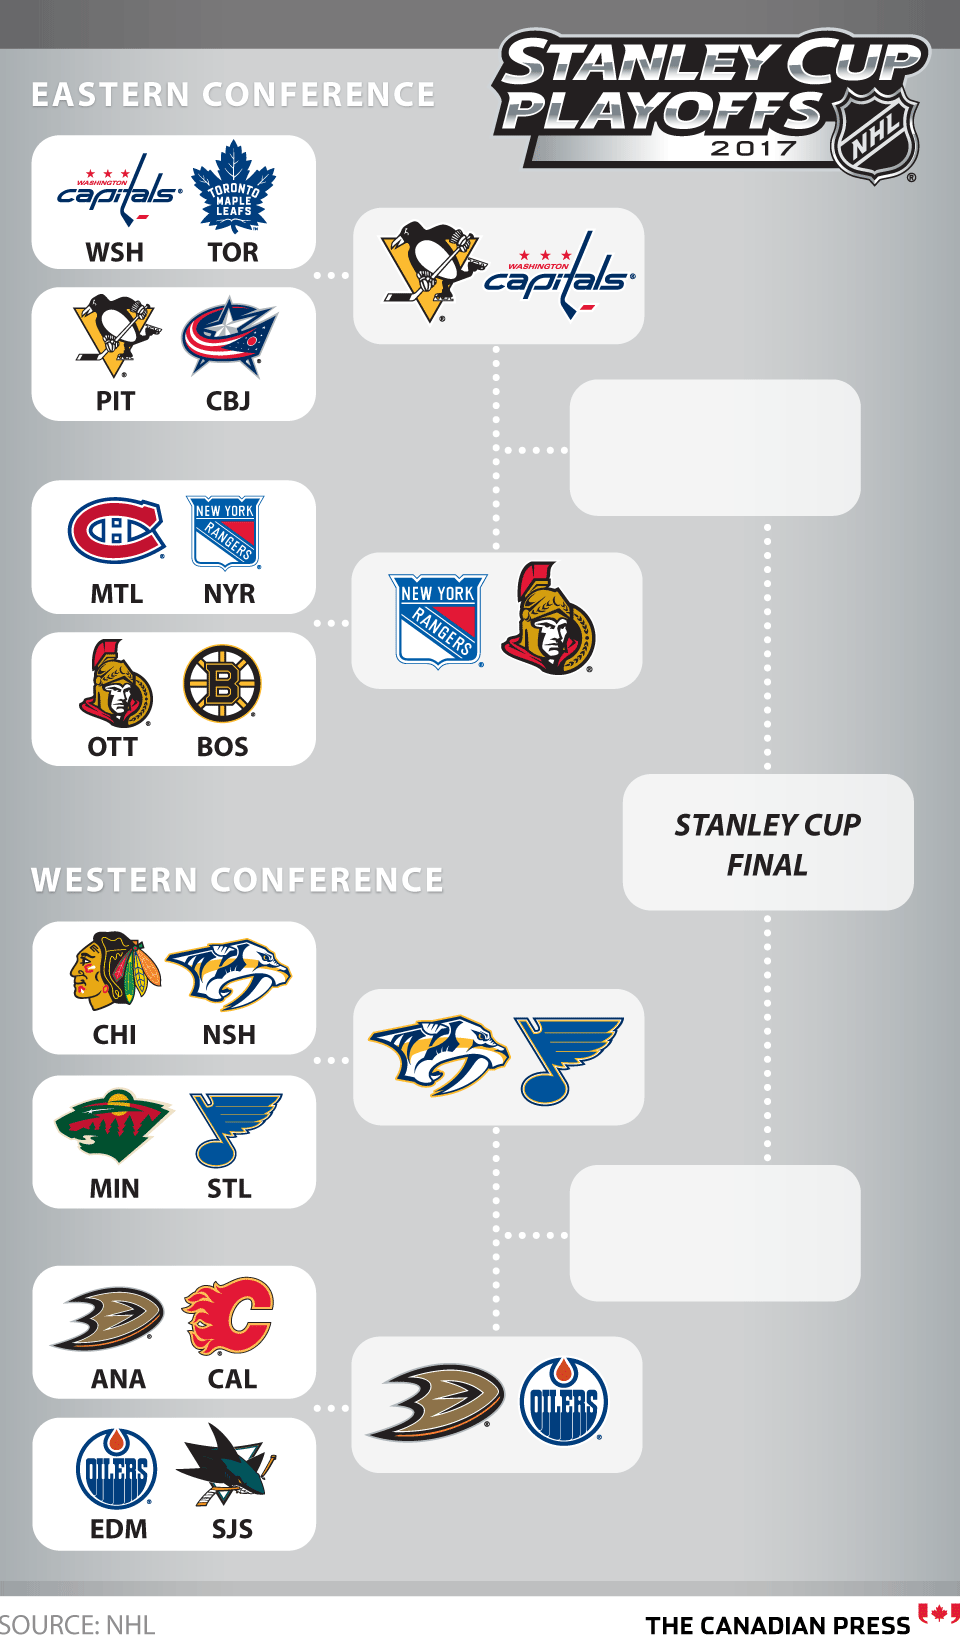 Stanley Cup Playoffs Full Results Cbc Sports Stanley Cup Stanley Cup Playoffs Playoffs